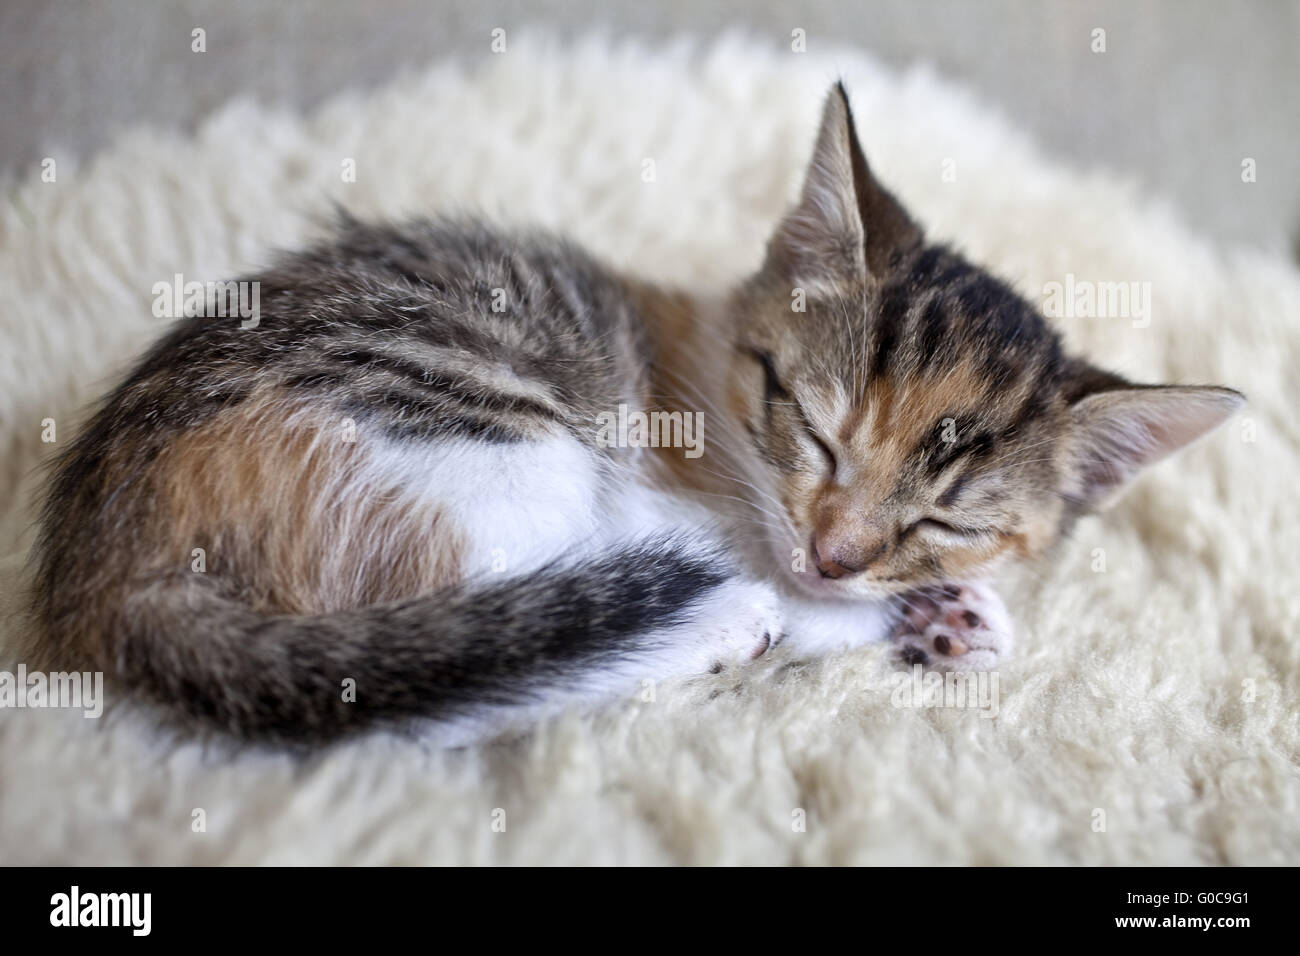 Sleeping kitten - Stock Image